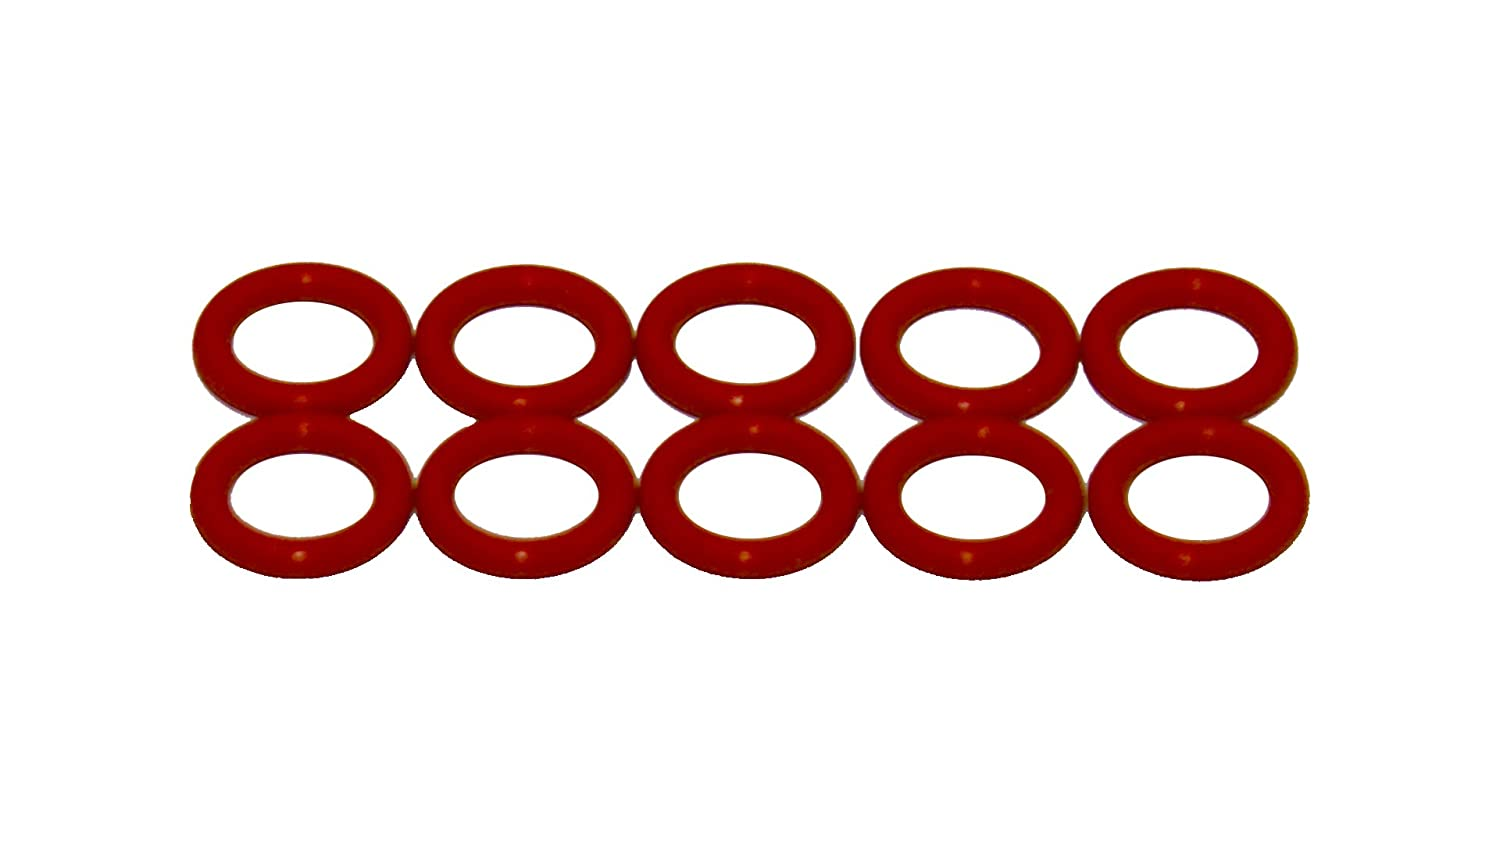 Sterling Seal ORSIL208x10 Number-208 Standard Silicone O-Ring has Excellent Resistance to Oxygen, Ozone and Sunlight, Vinyl Methyl Silicone, 70 Durometer Hardness, 5/8